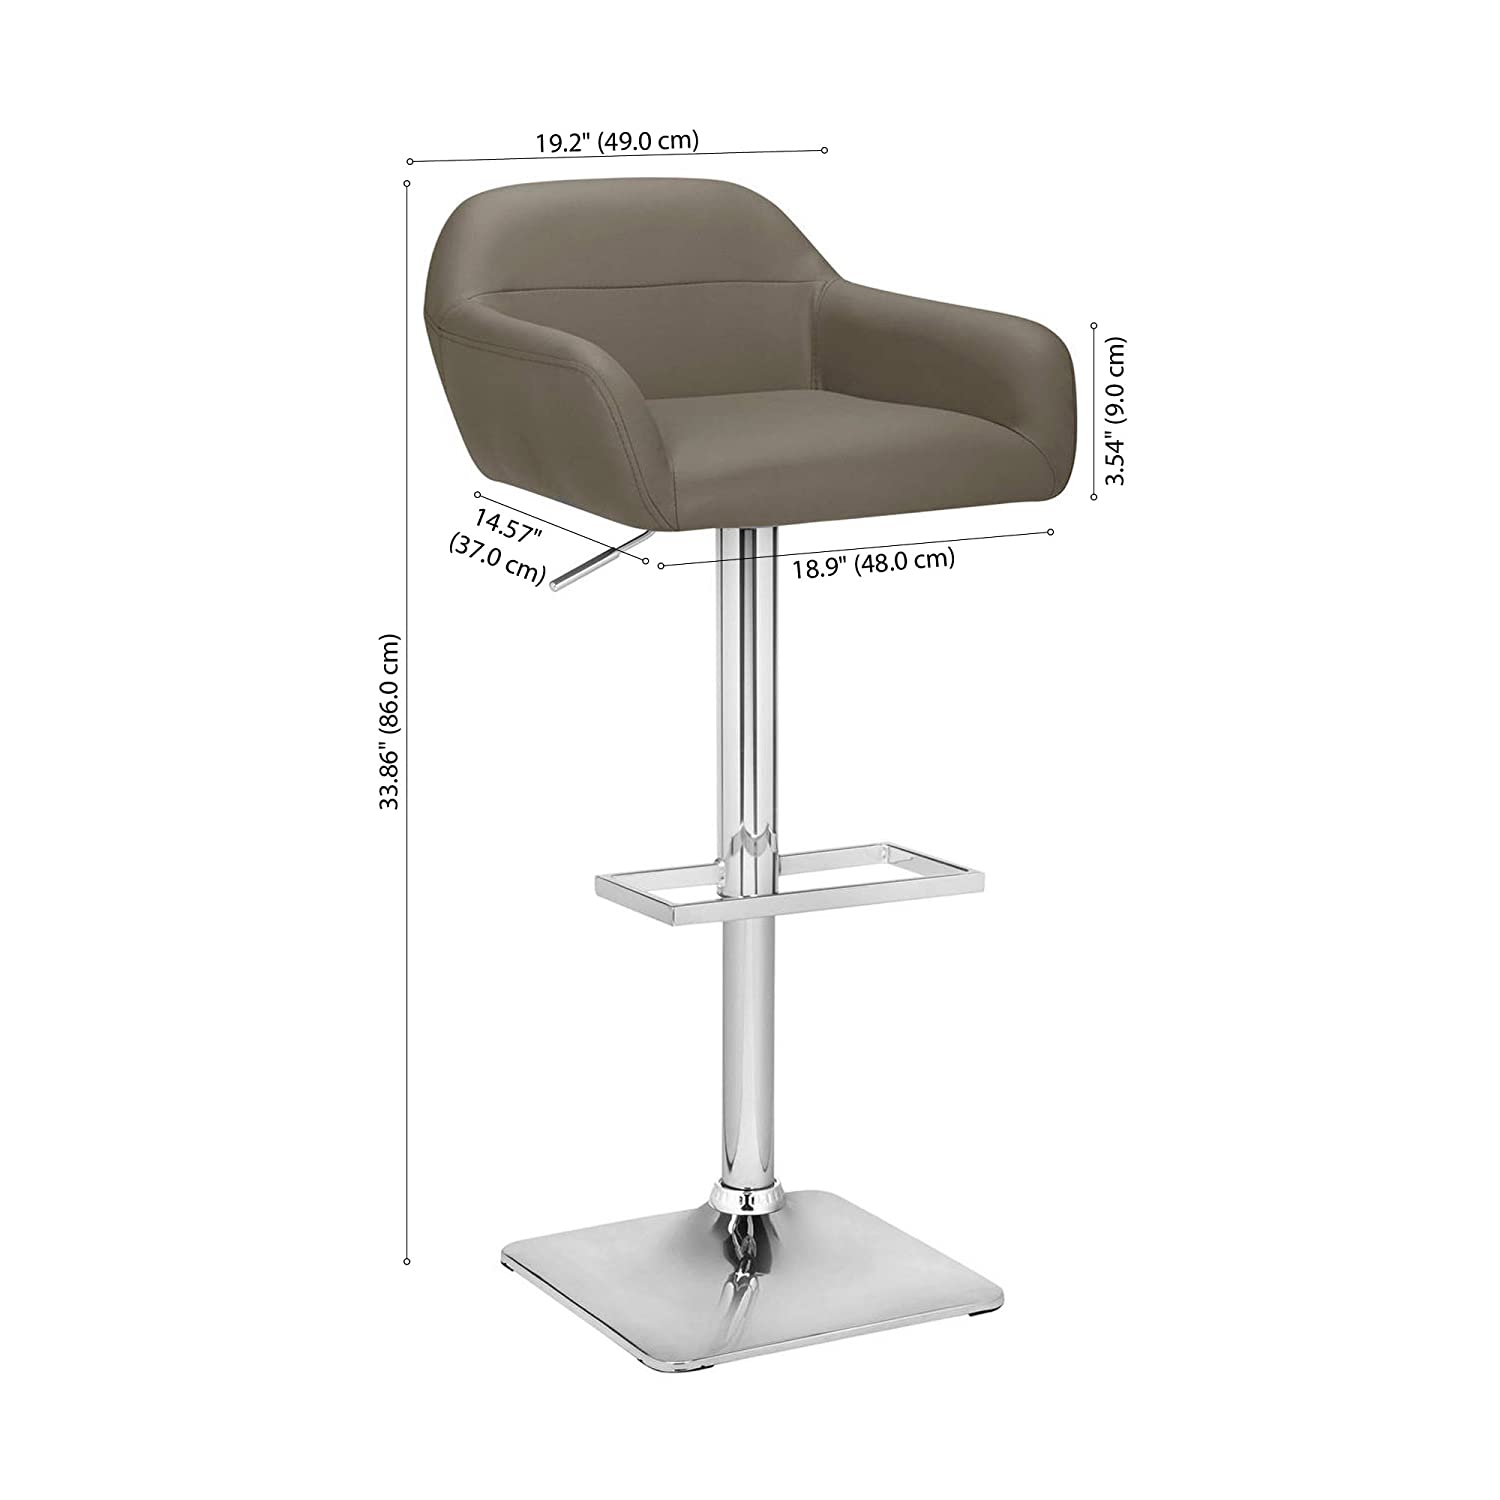 Fine Bouclair Matte Faux Leather And Chrome Adjustable Bar Stool Taupe Modern Contemporary Counter And Dining Seat 18 5 W X 42 1 H Gmtry Best Dining Table And Chair Ideas Images Gmtryco